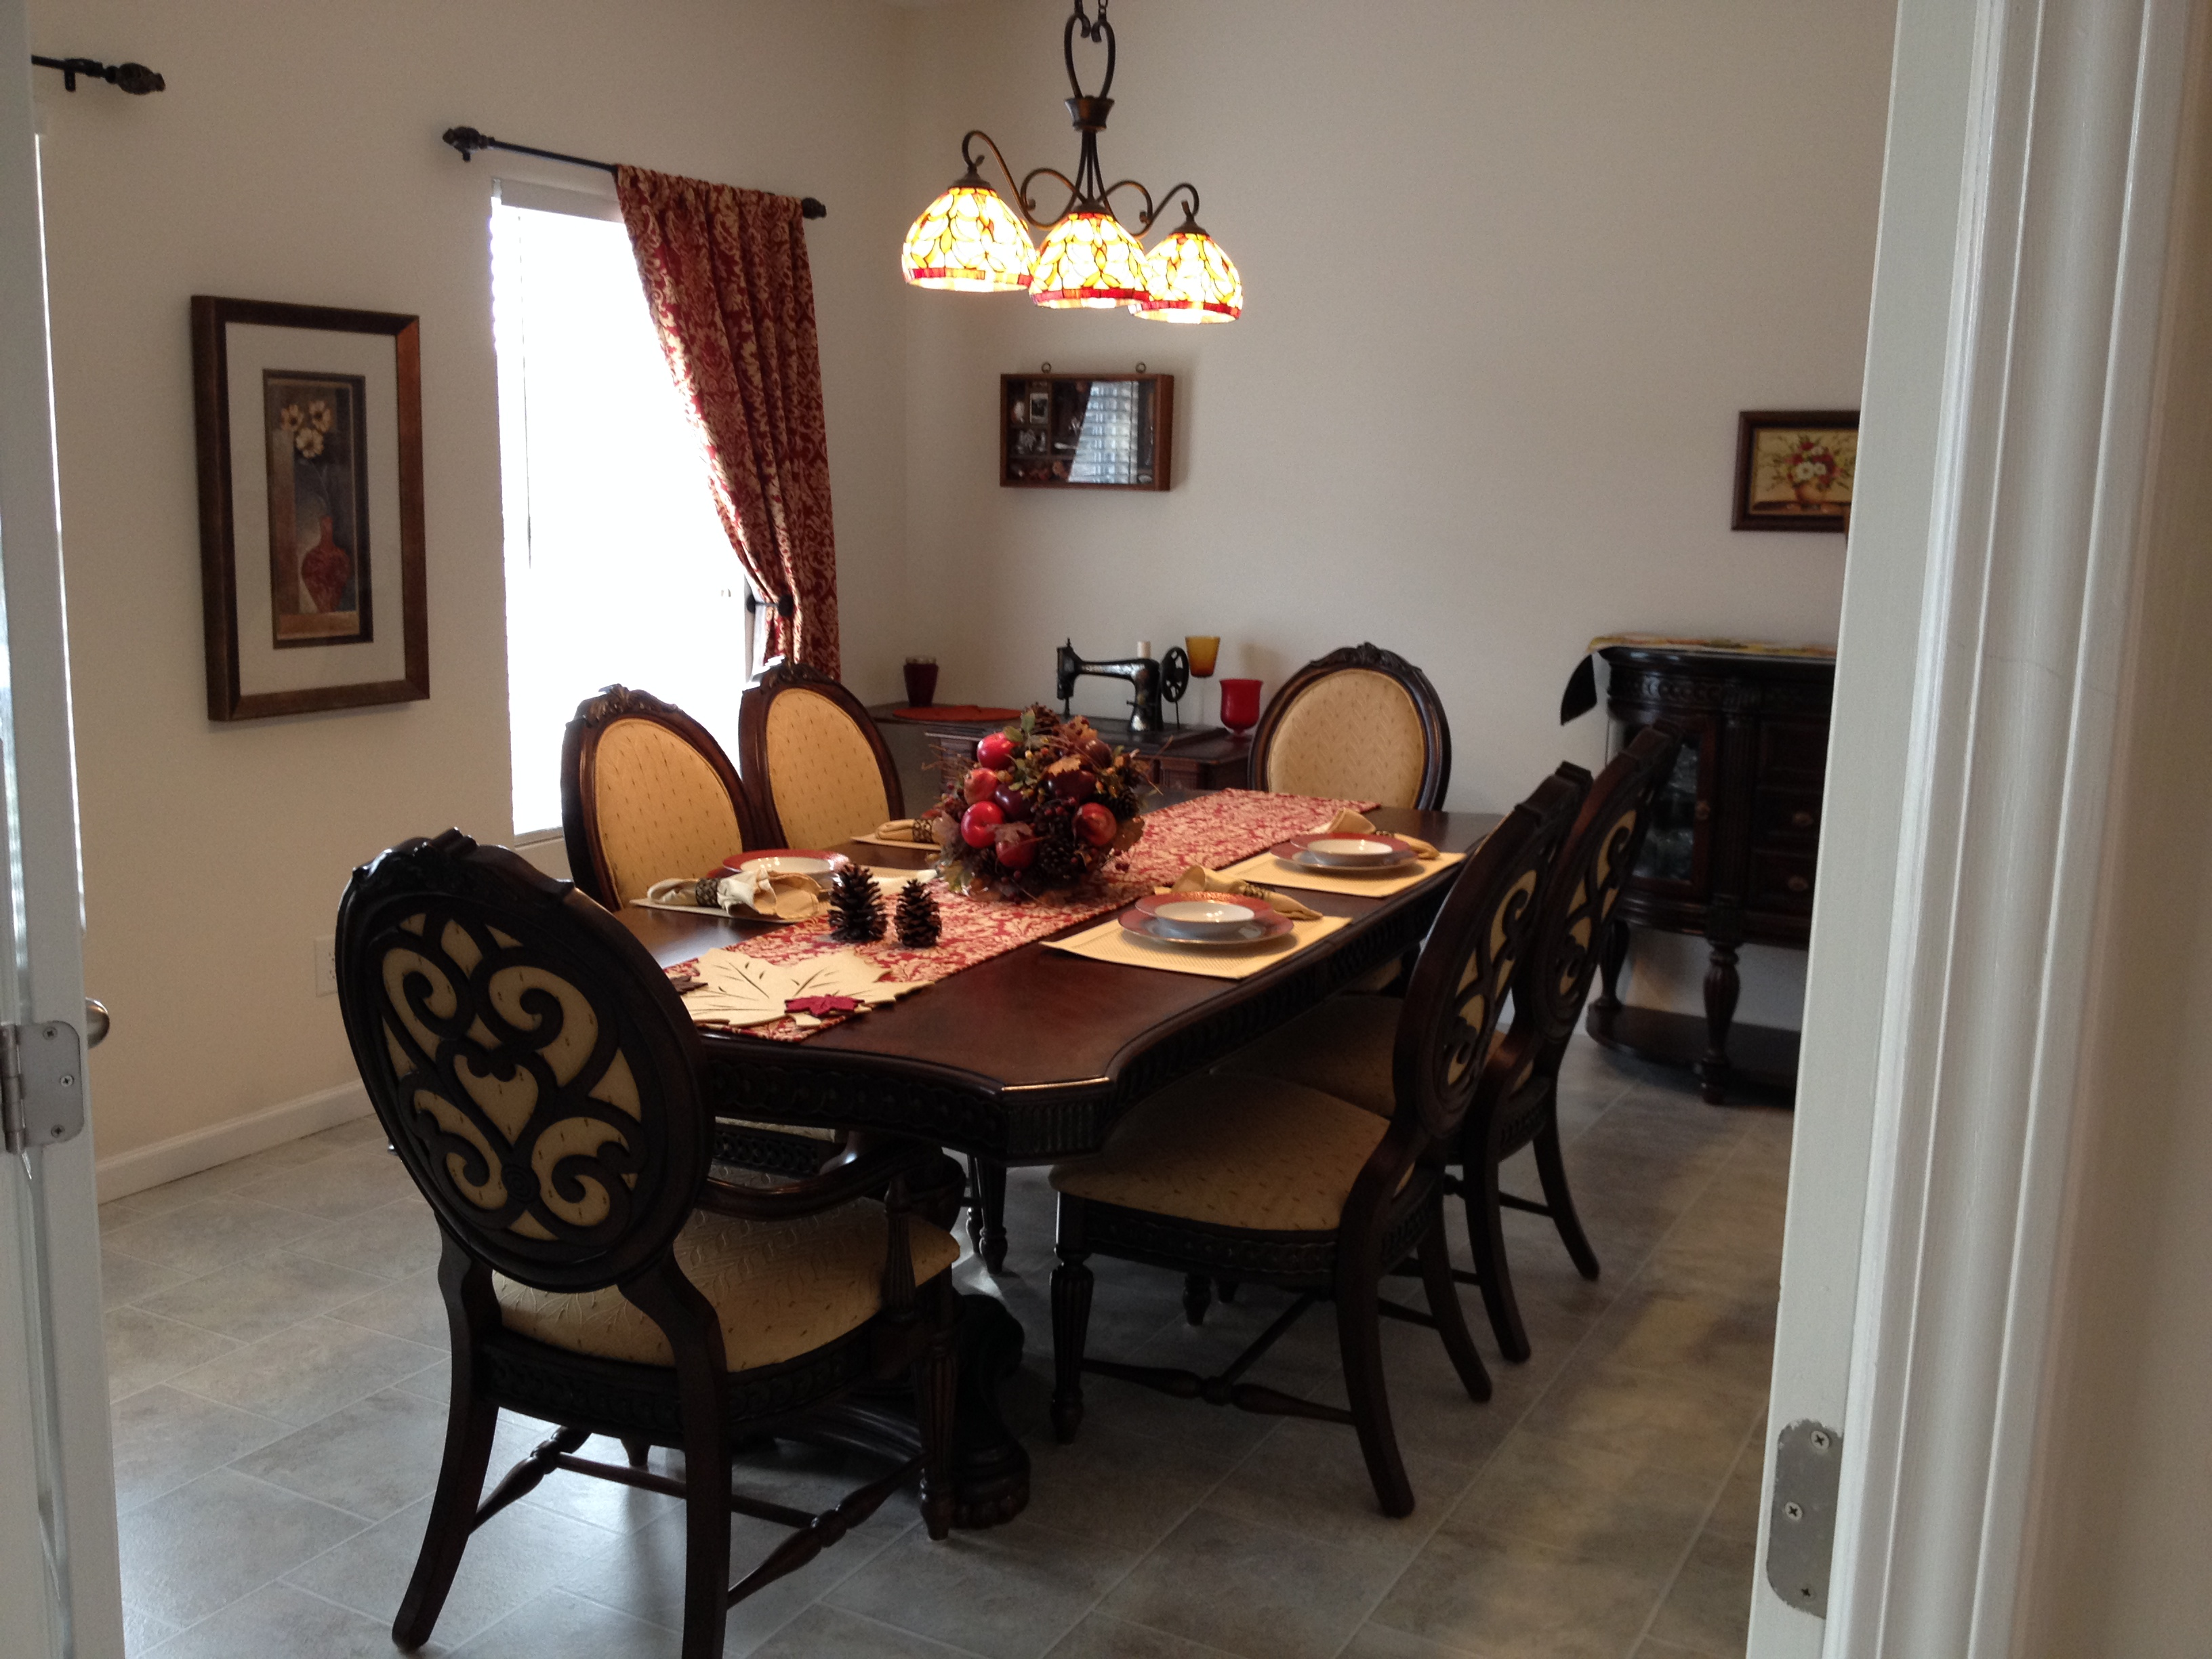 Concord place brentwood tn home for sale for Dining near brentwood tn